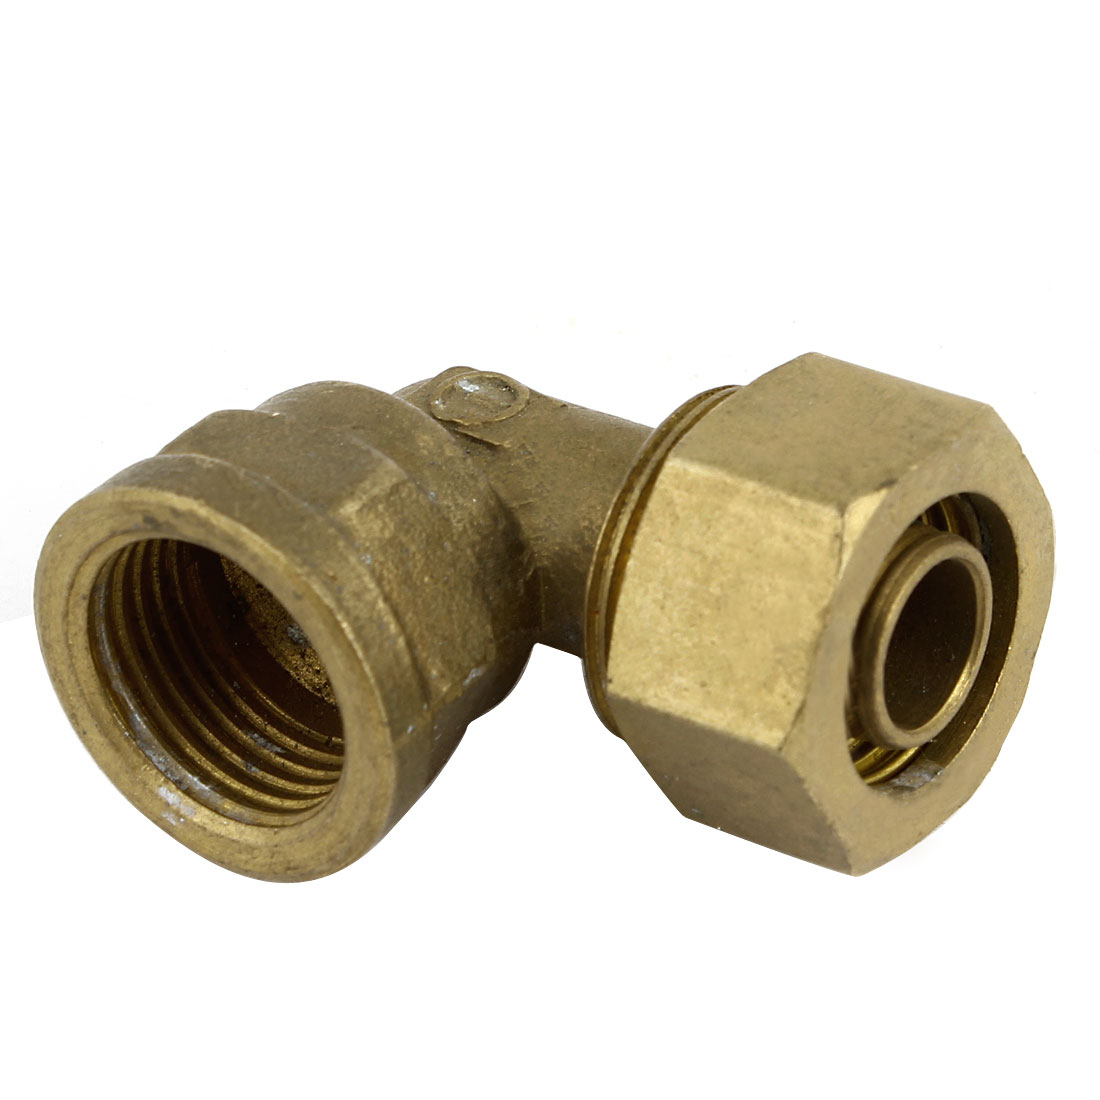 1/2 PT Female Thread 90 Degree Right Angle Design Hose Pneumatic Pipe Tube 11 x 14mm Quick Equal Elbow Coupler Connector Fitting Adapter Brass Tone